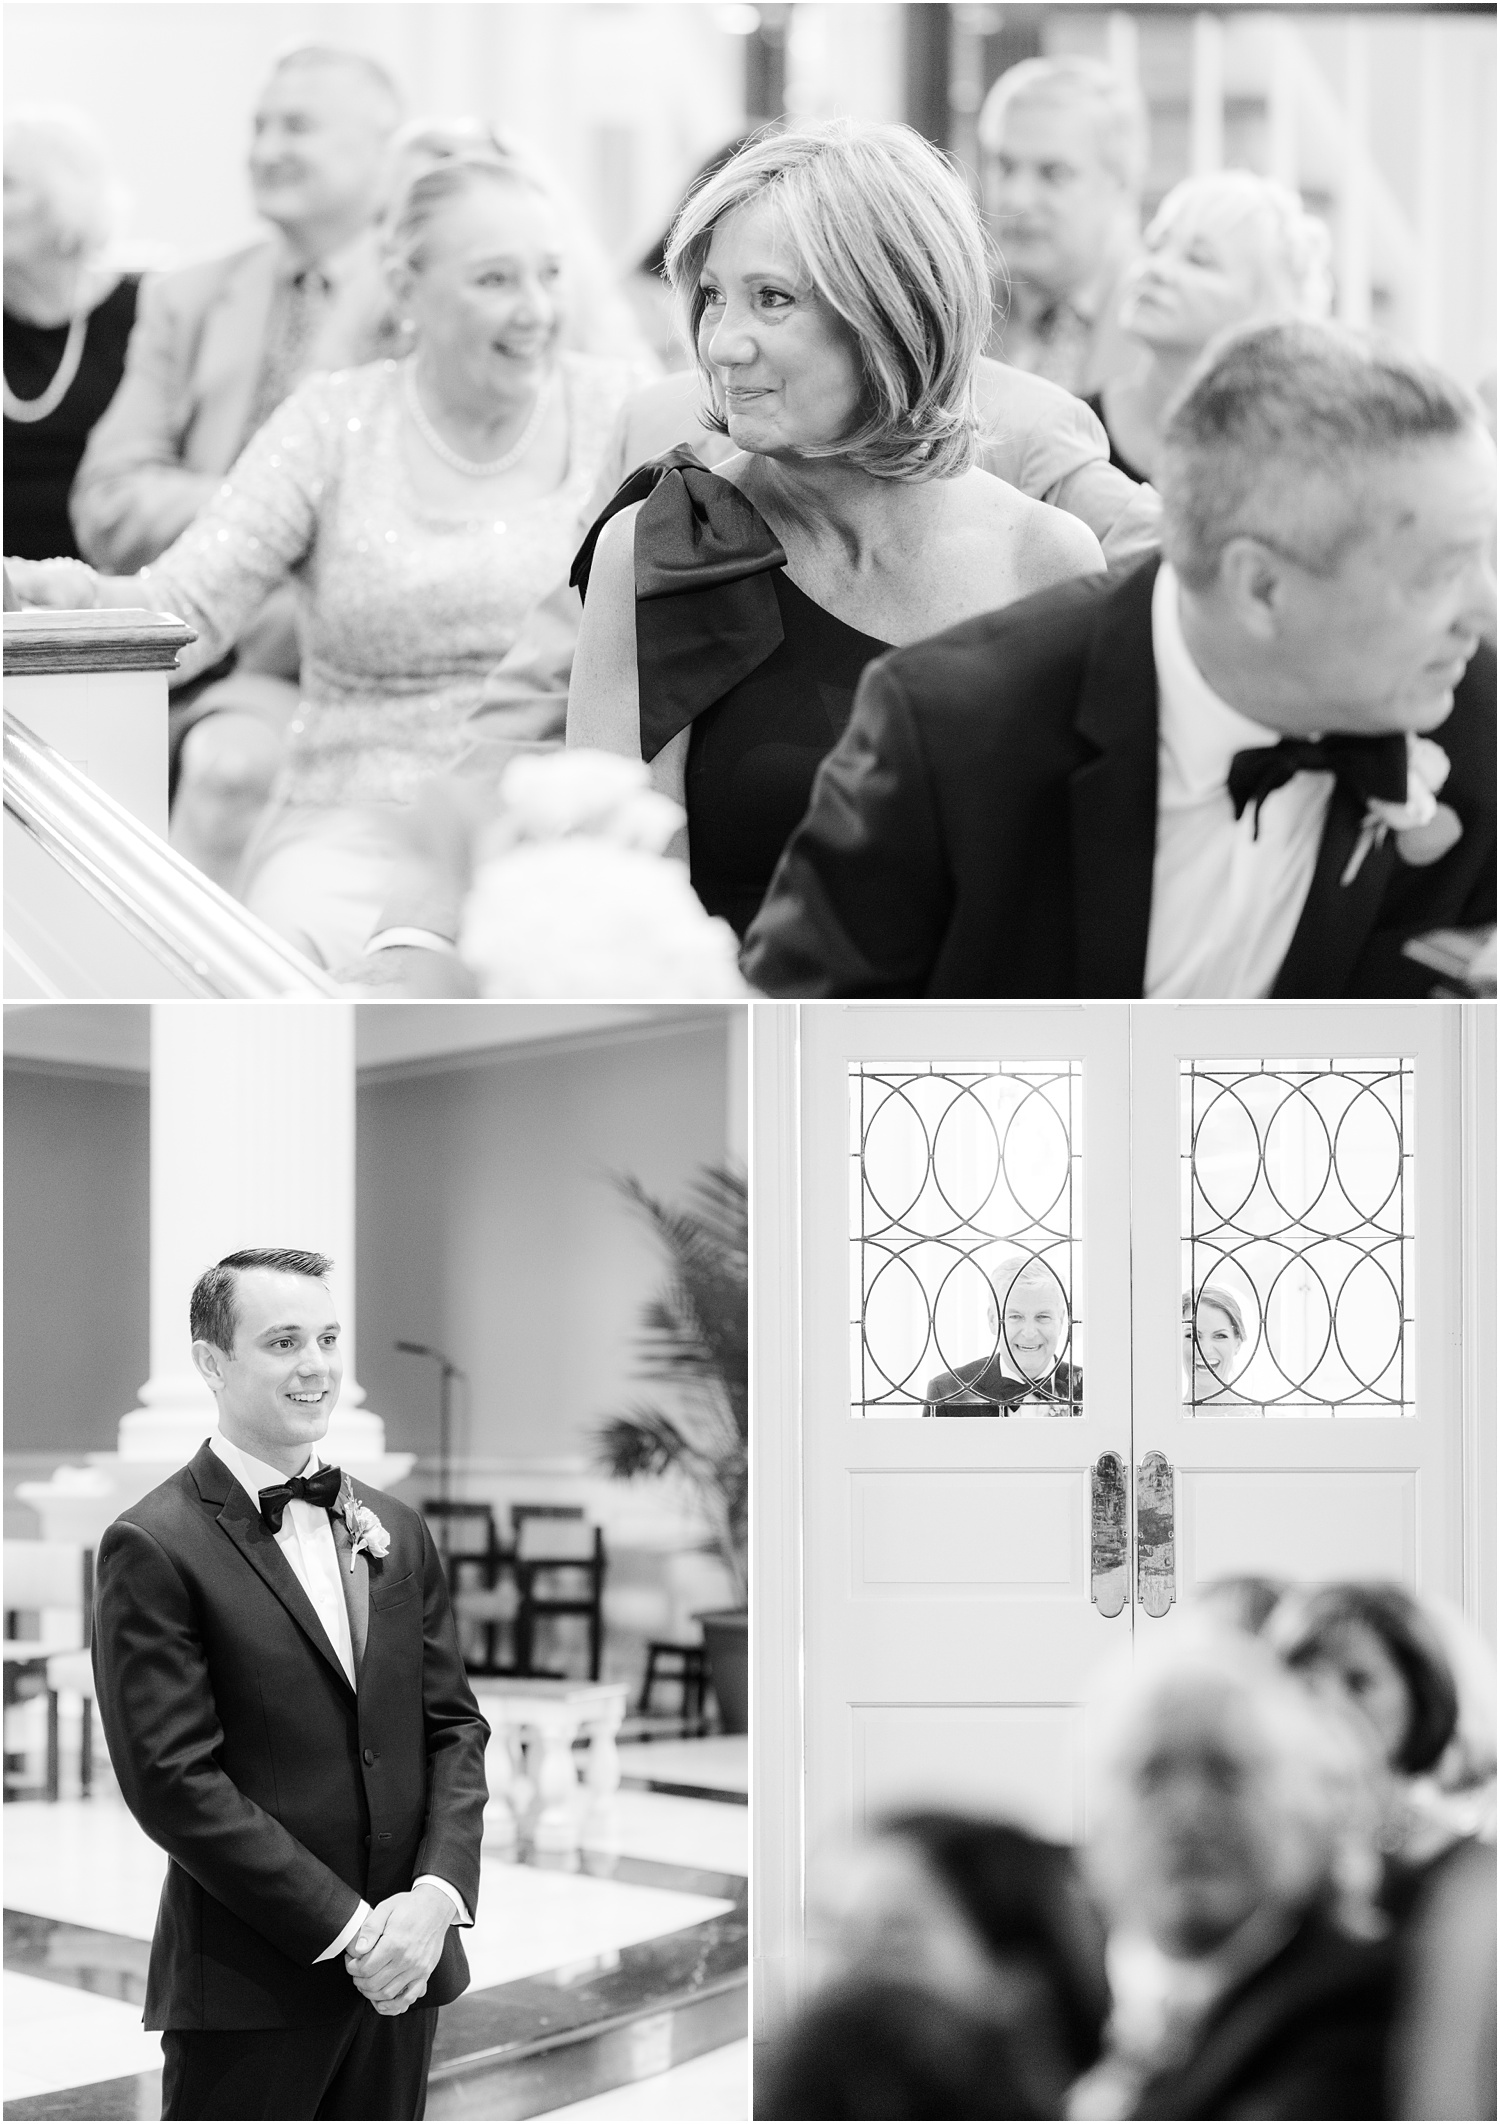 Groom waiting for bride to come down the aisle at St. Rose of Lima in Short Hills, NJ.